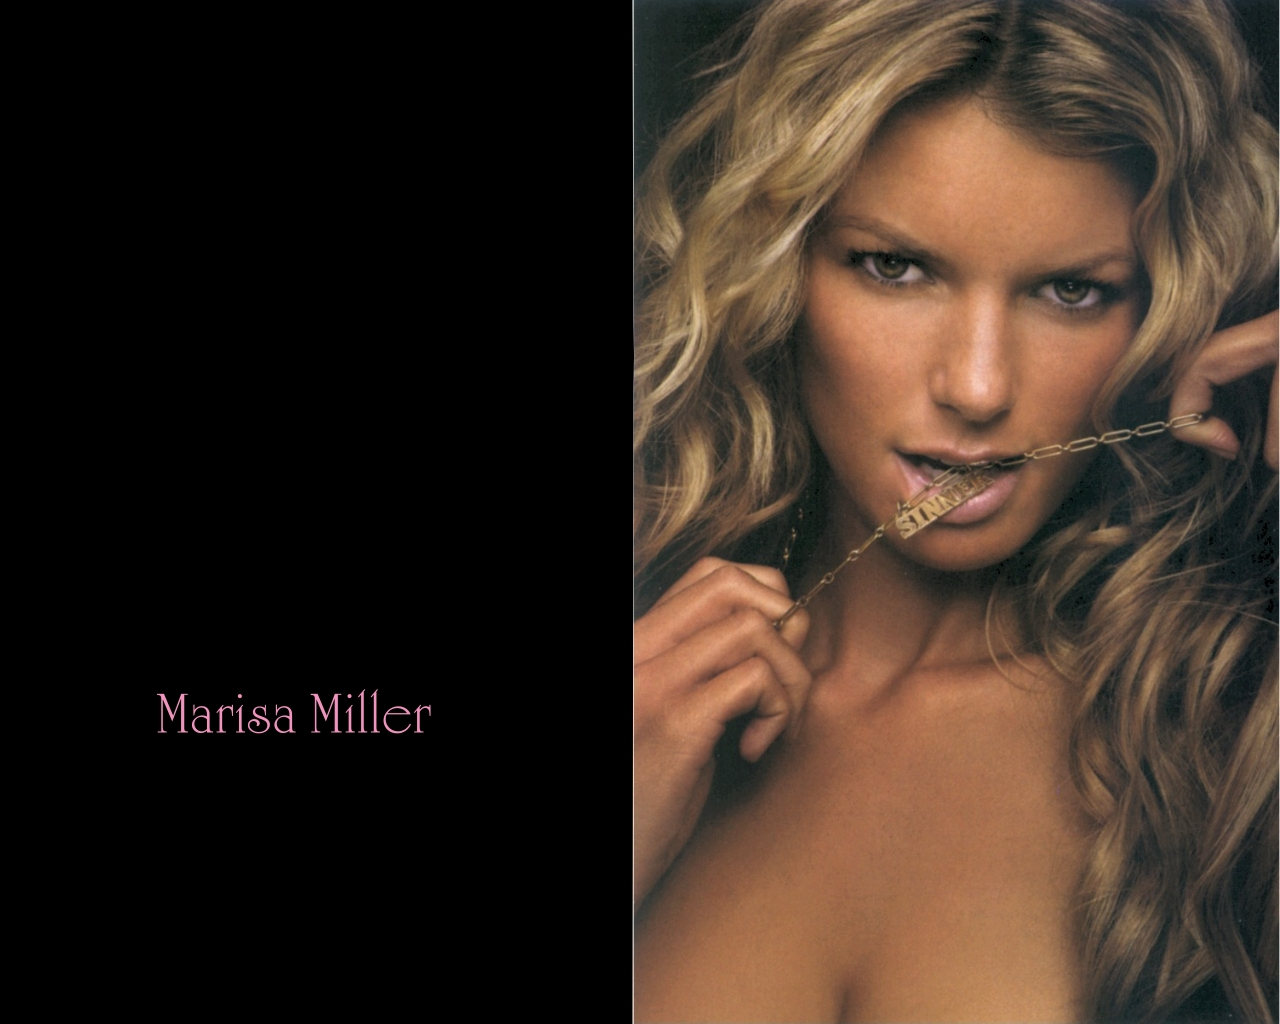 You are viewing the Marisa Miller wallpaper named Marisa miller 42.